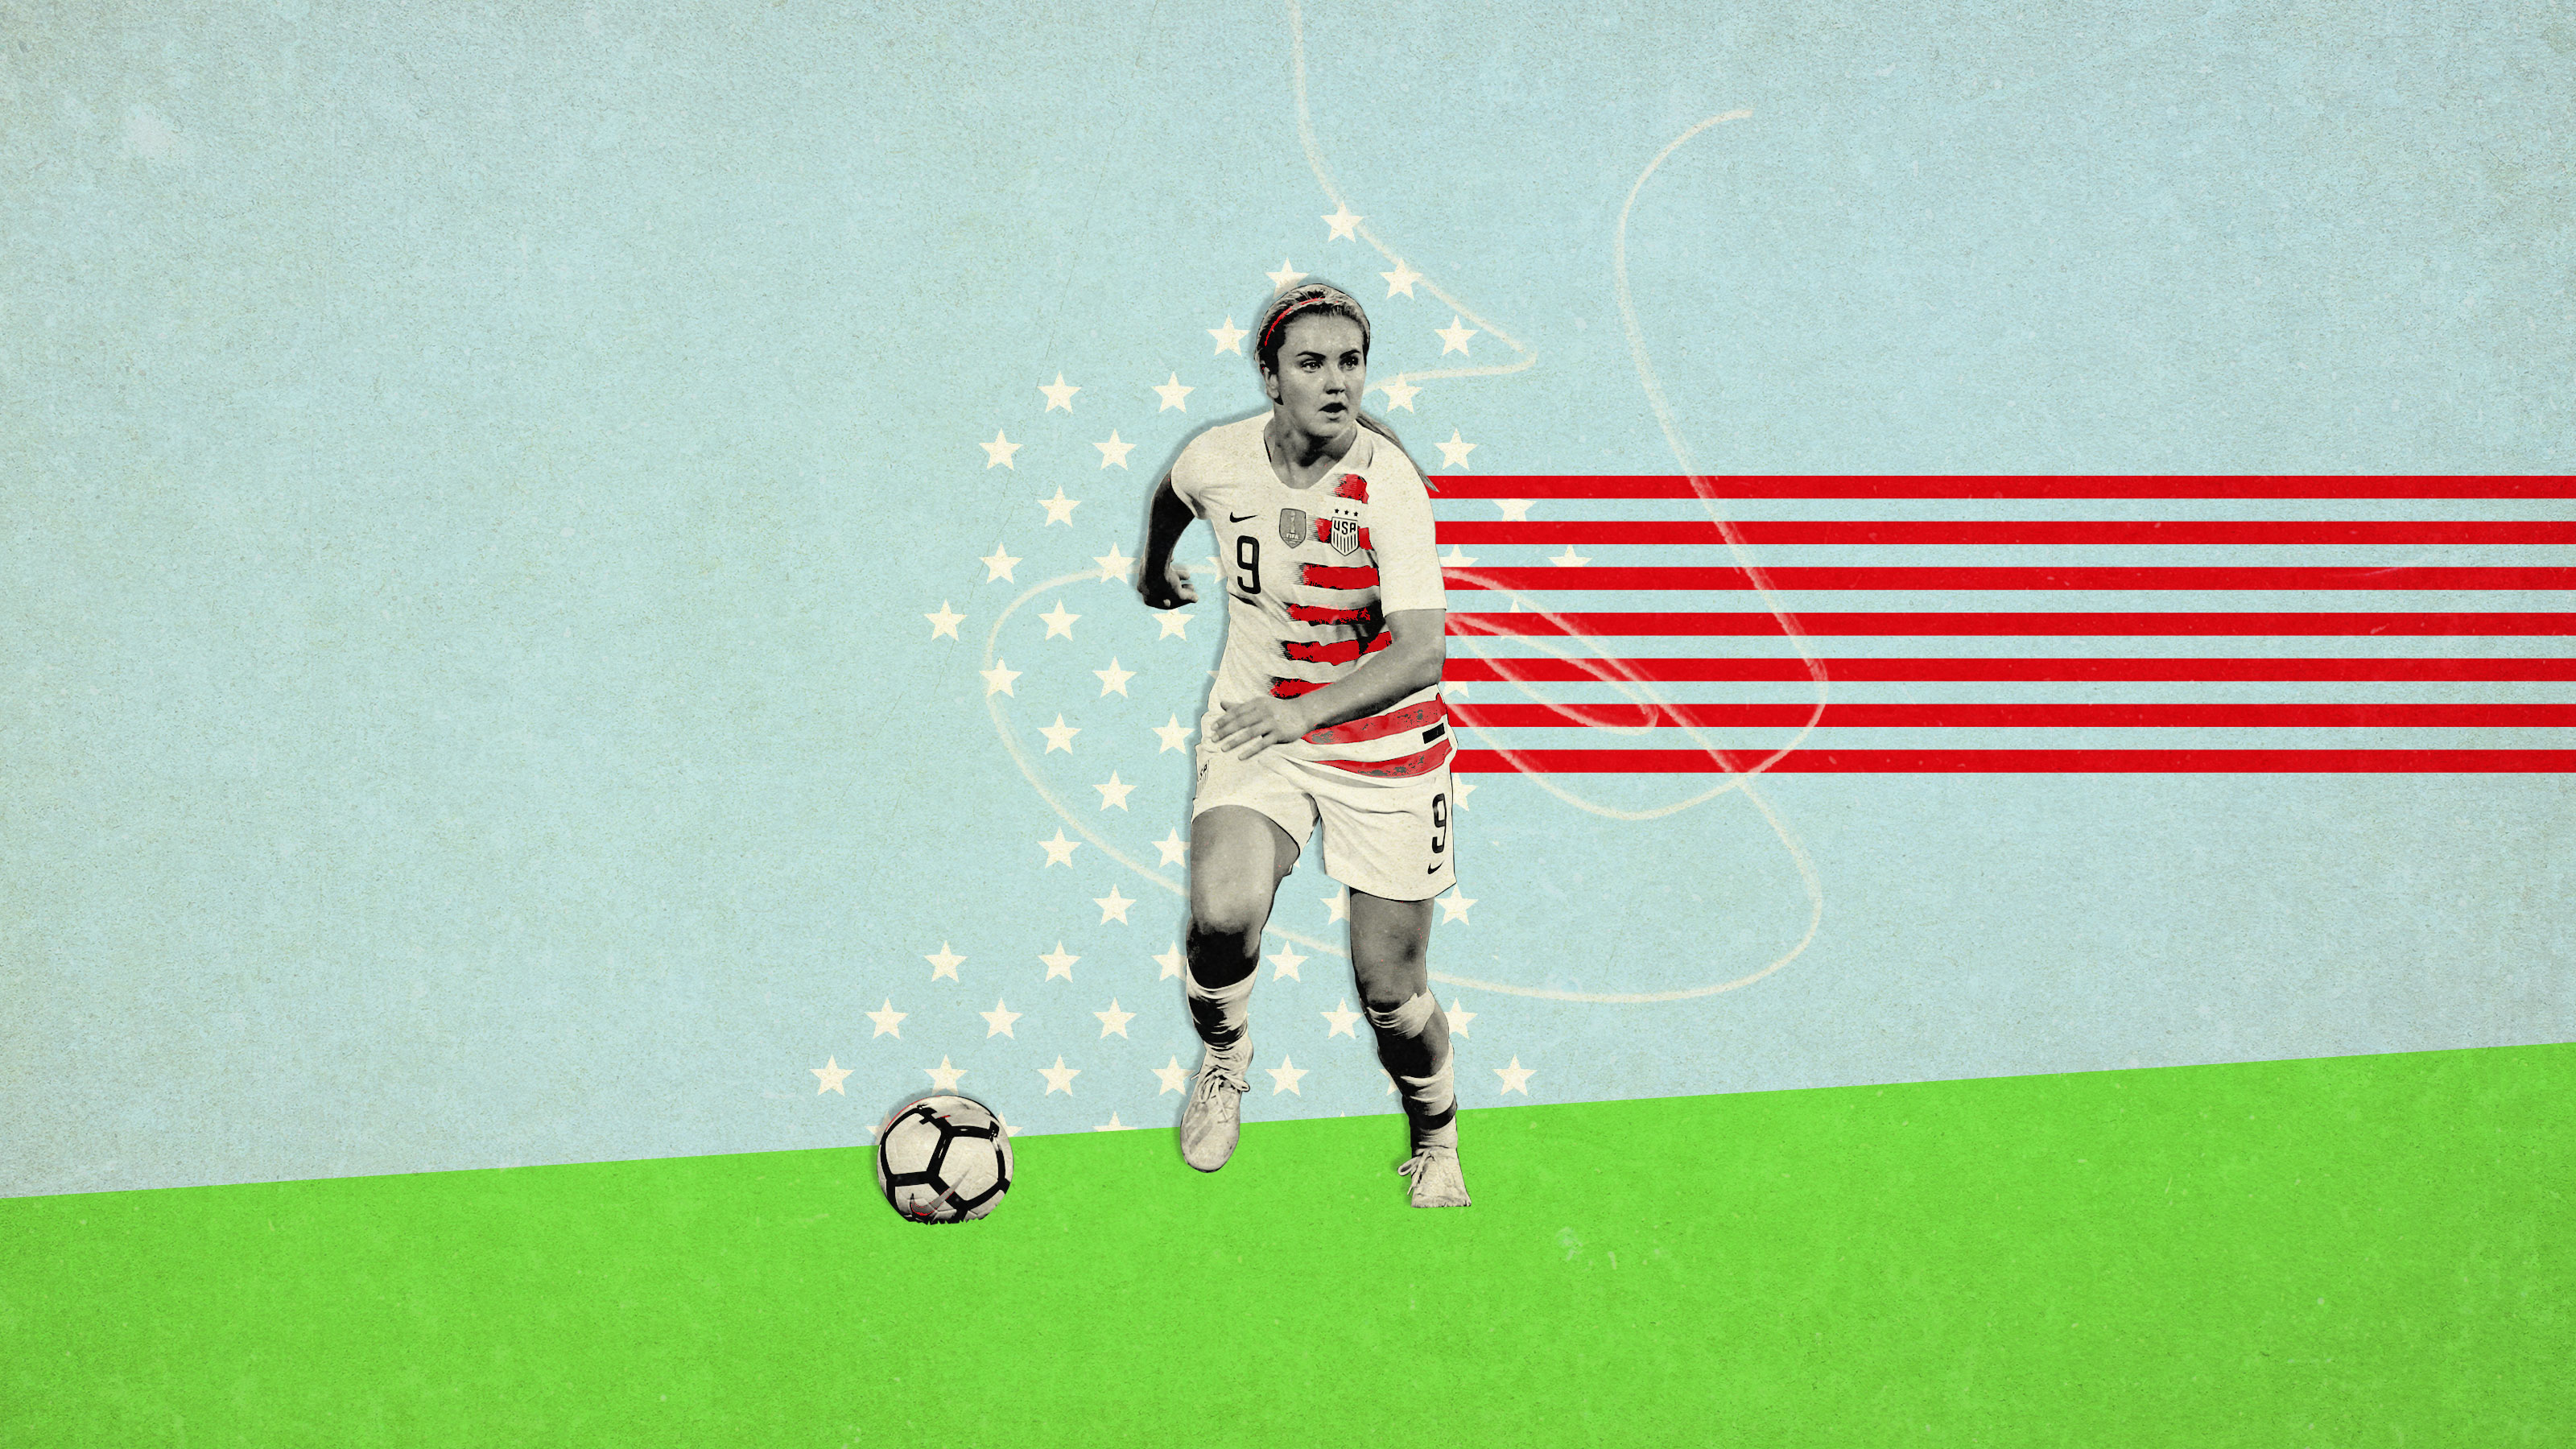 ea5843716f Lindsey Horan's Past May Represent the USWNT's Future - The Ringer